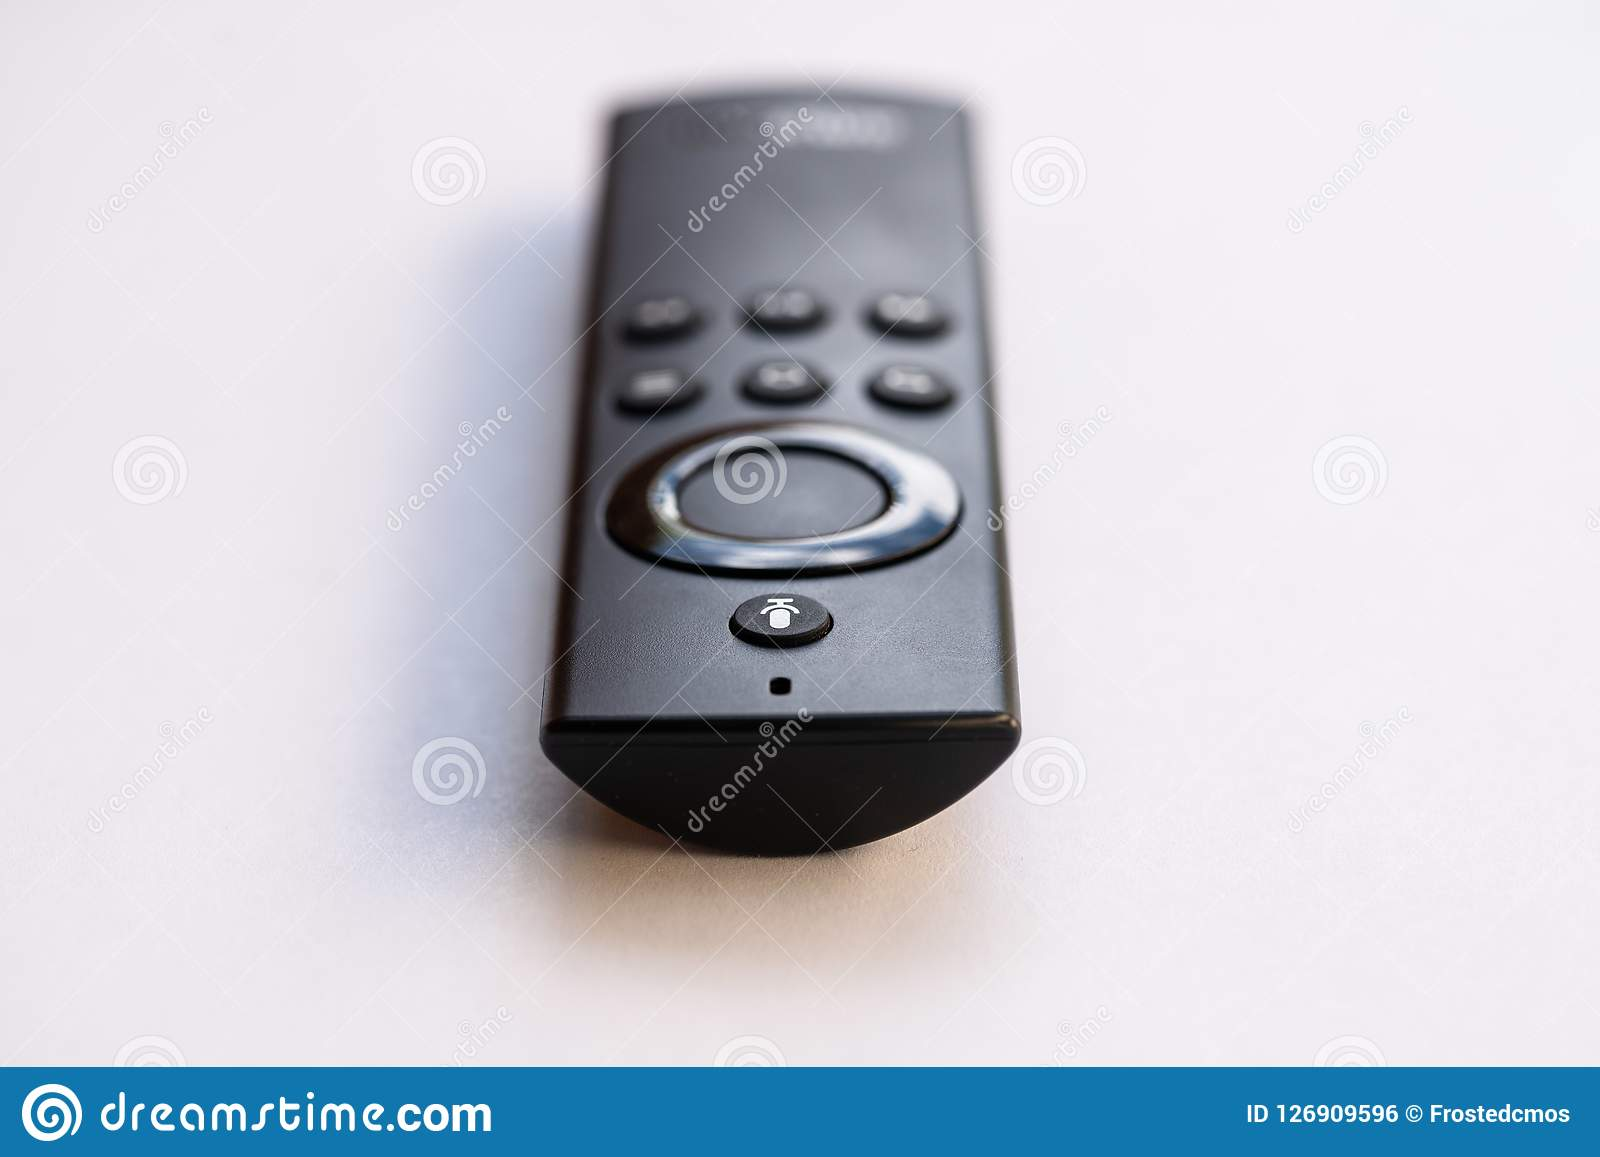 Isolated TV remote control on white background